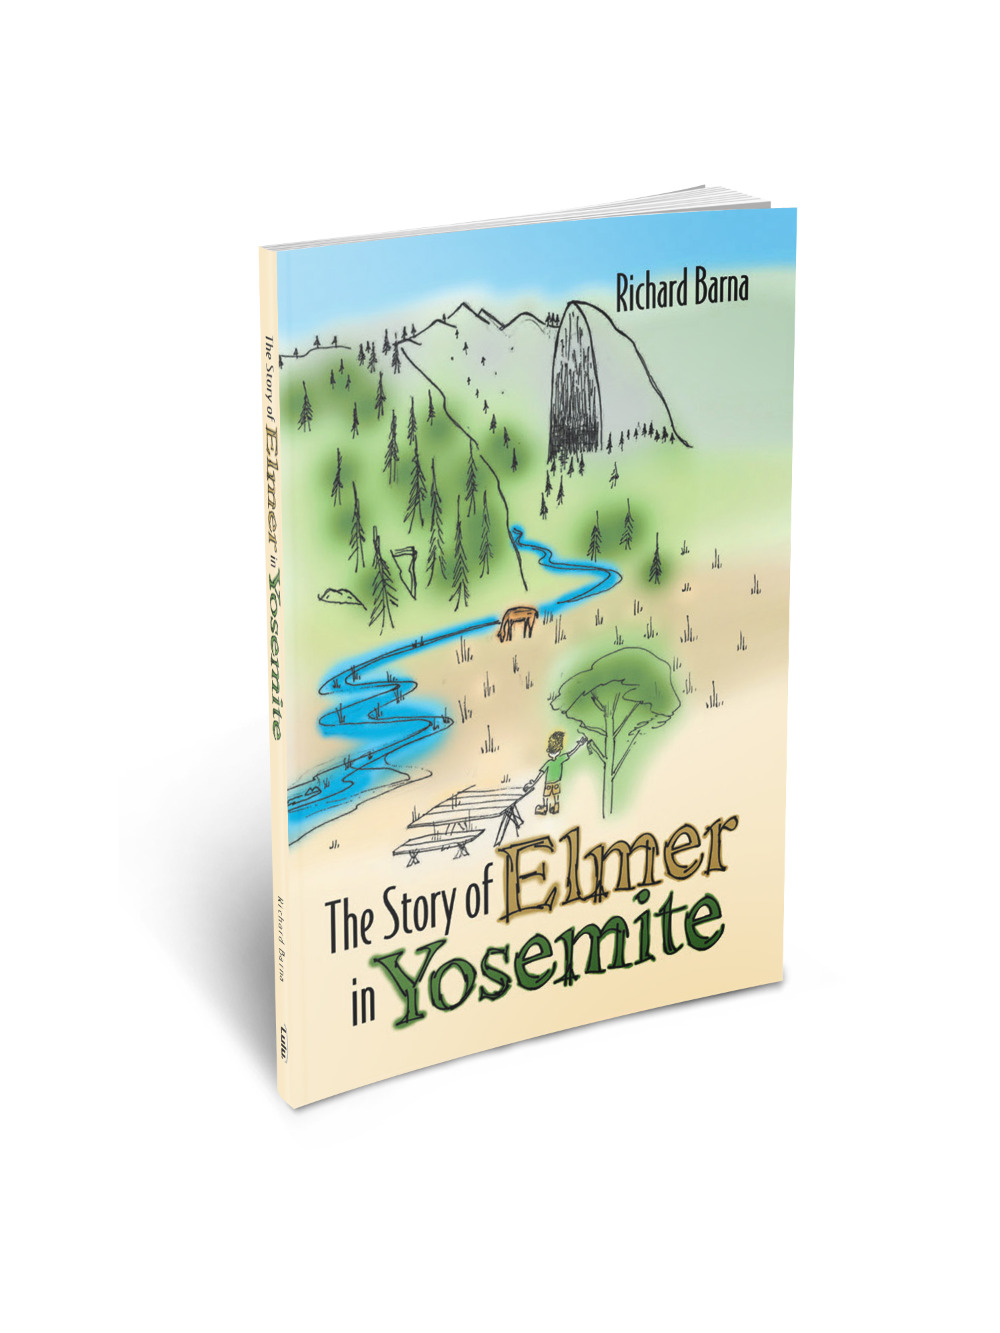 The Story Of Elmer in Yosemite (CUSTOM AUTOGRAPHED BY THE AUTHOR)